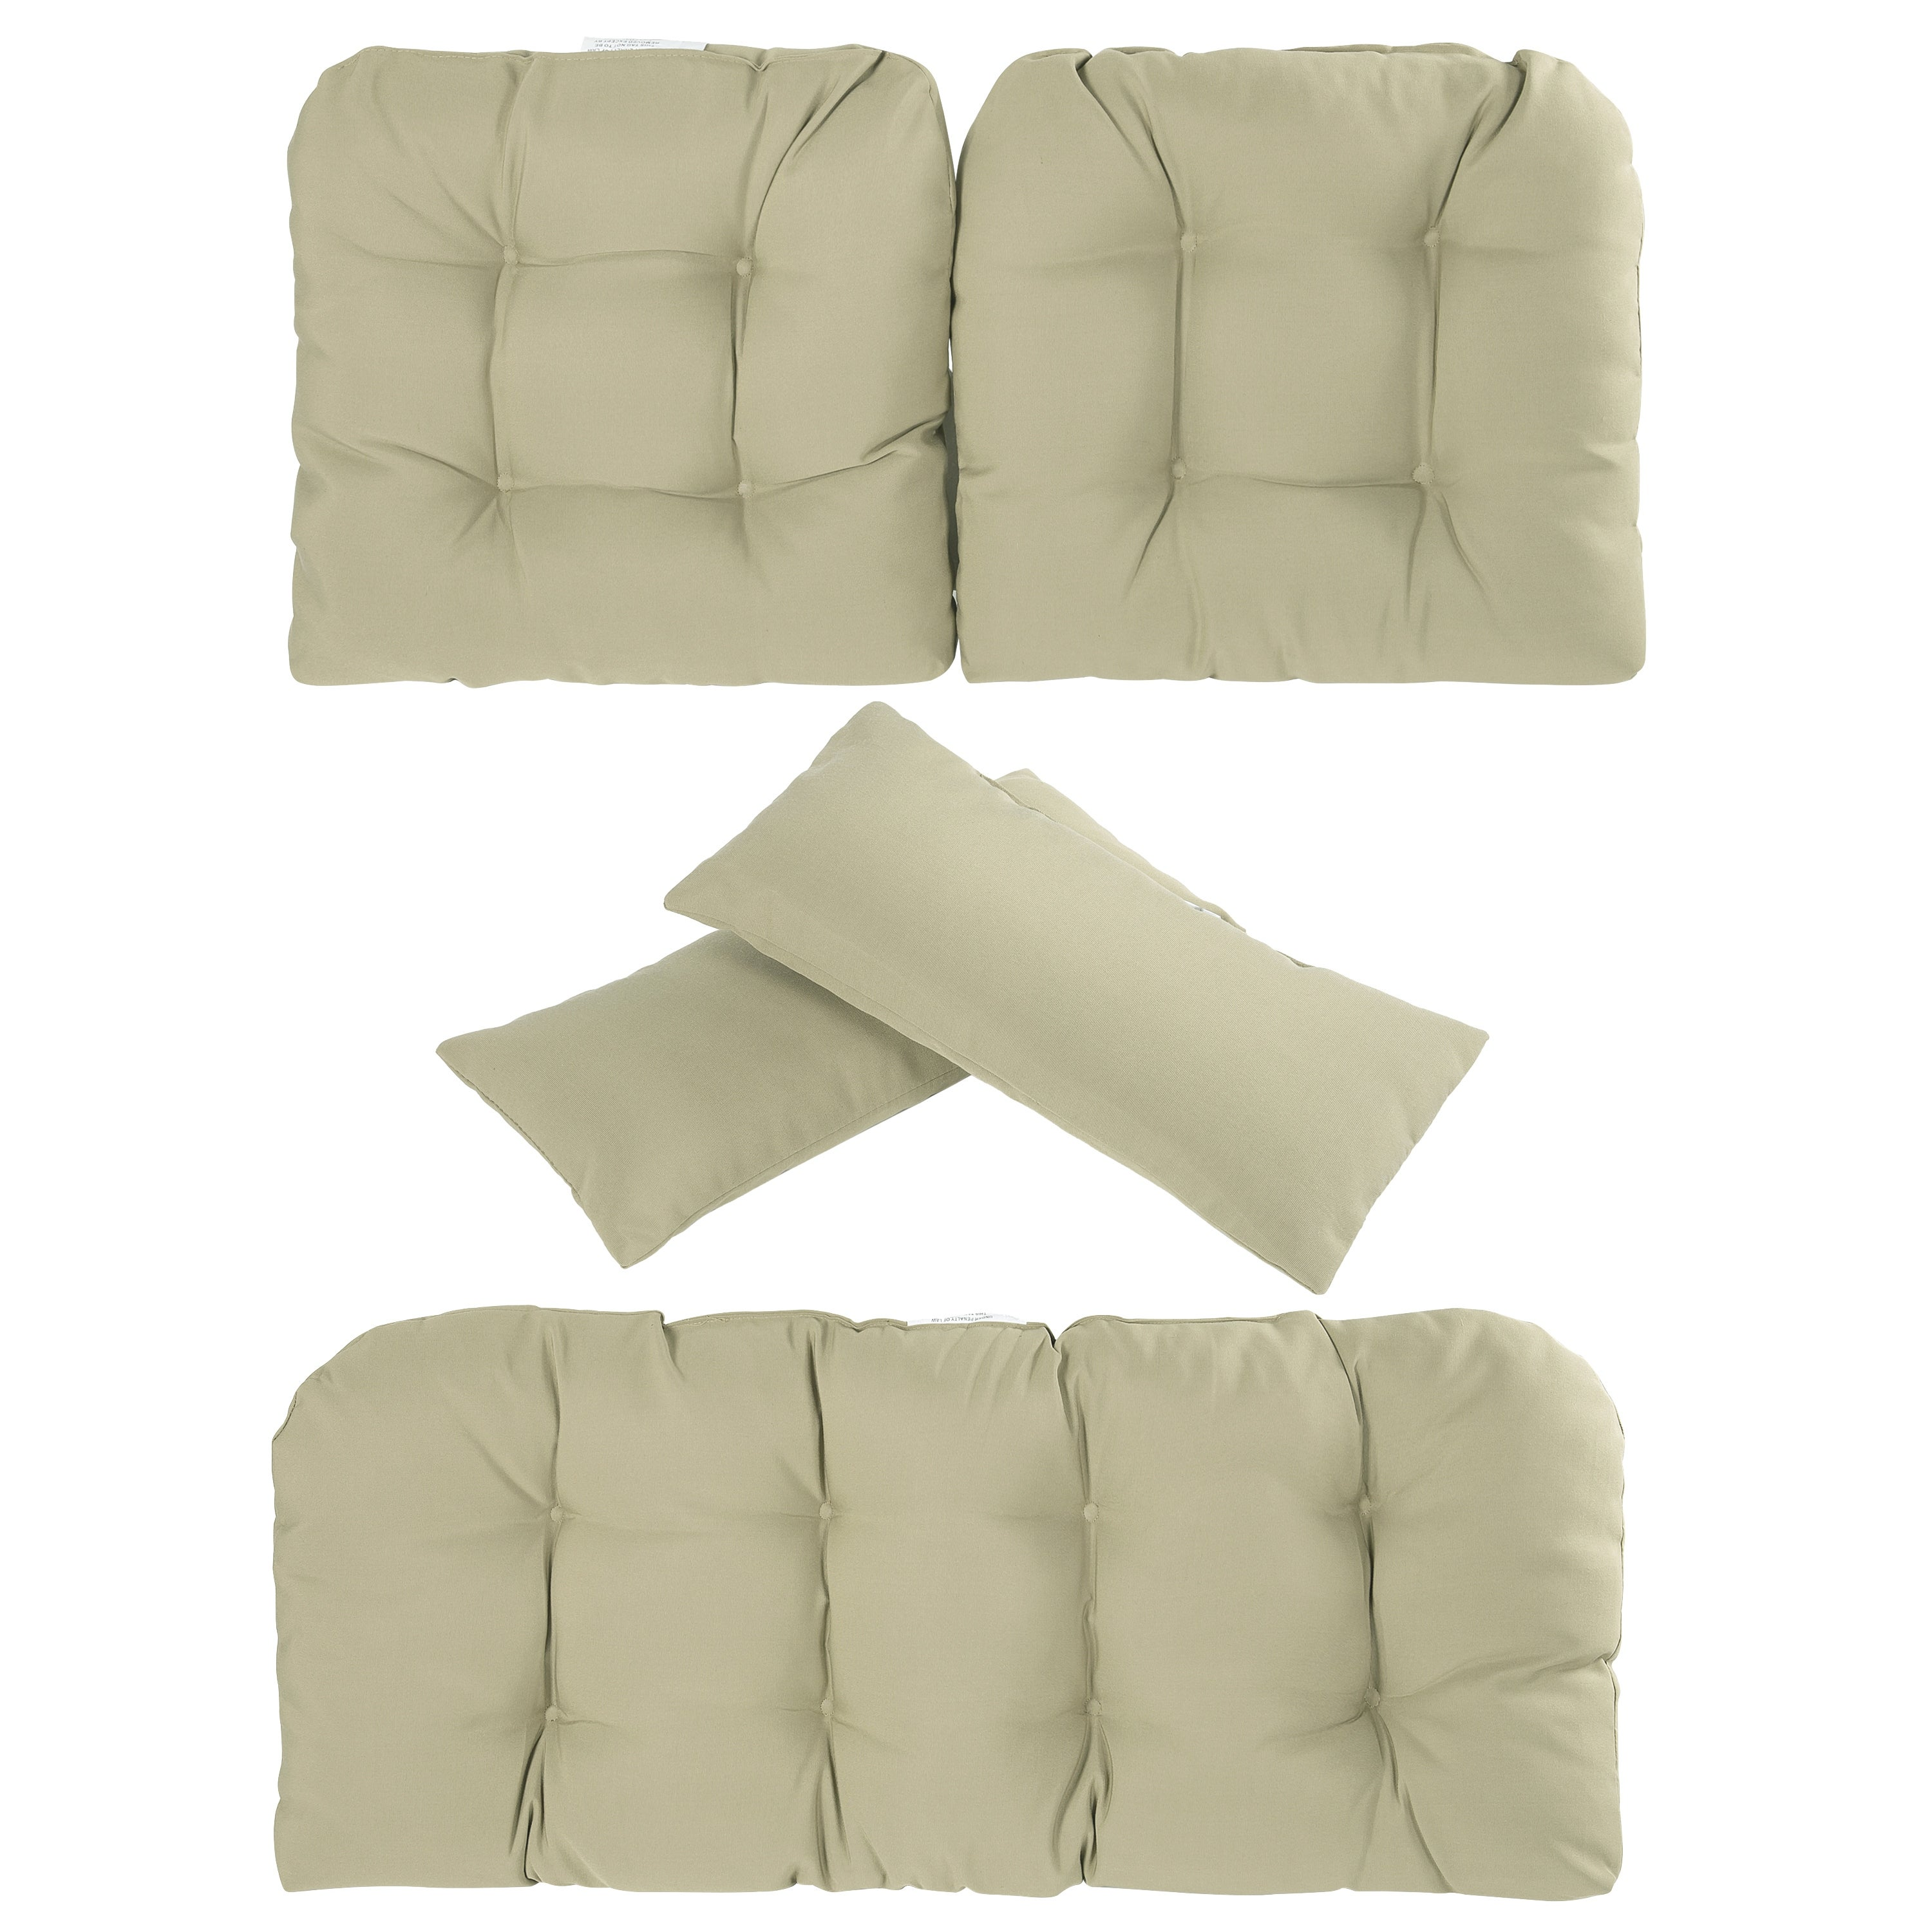 Art Leon 5 Pieces Patio Seat Cushions With Two Throw Pillow Overstock 28001261